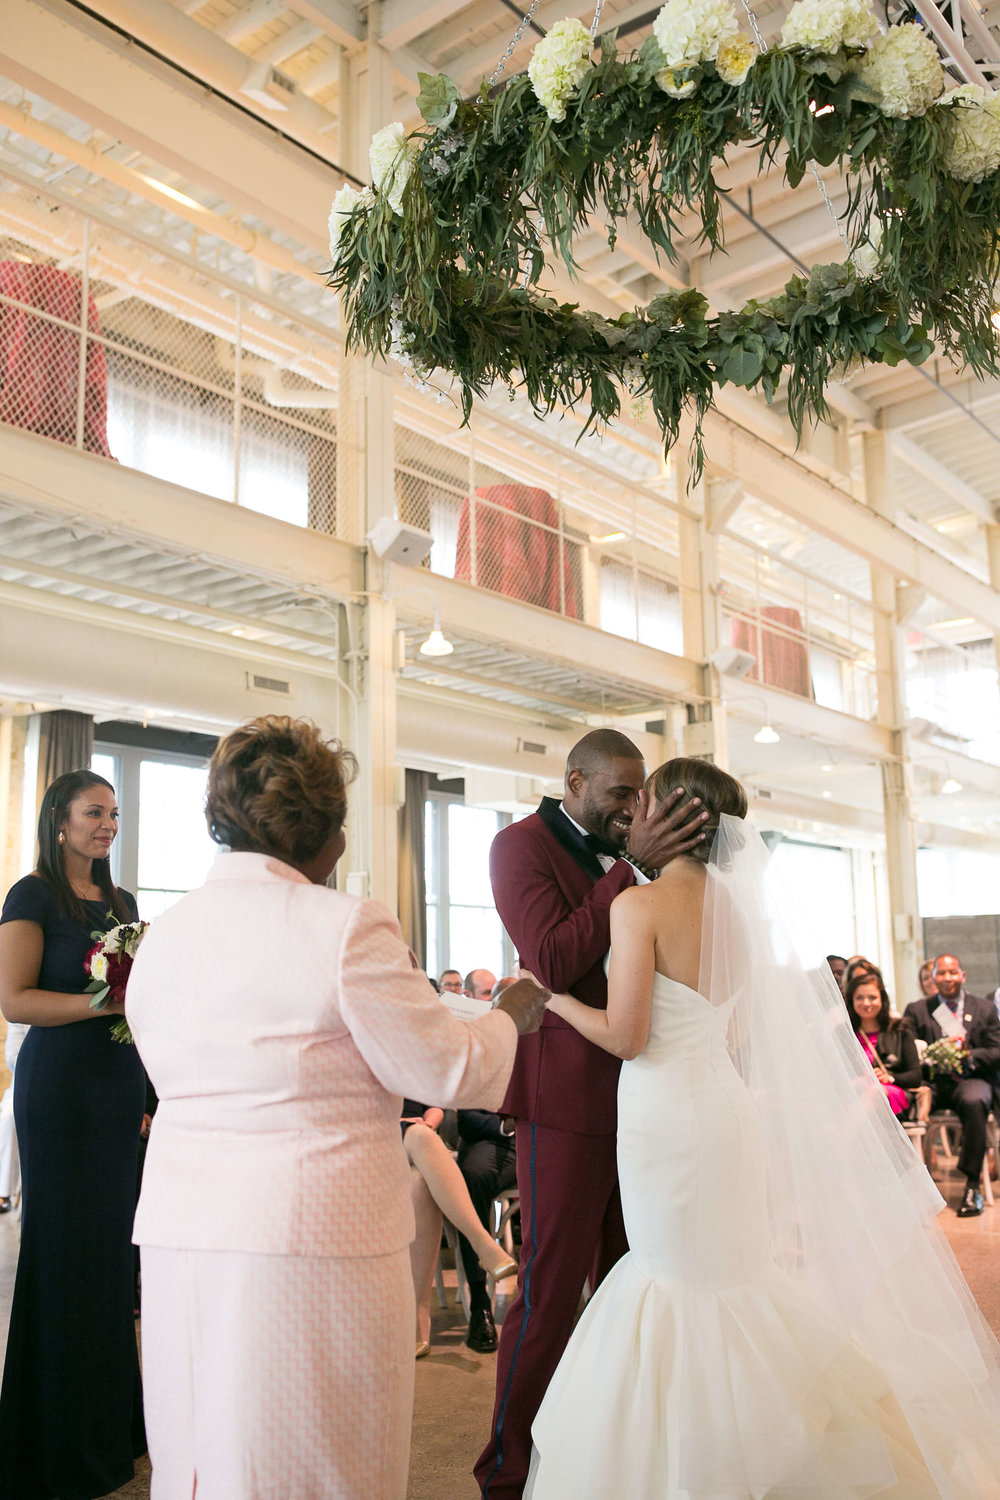 54Alice HQ Photography - Machine Shop Minneapolis - Sixpence Events and Planning wedding planner.JPG